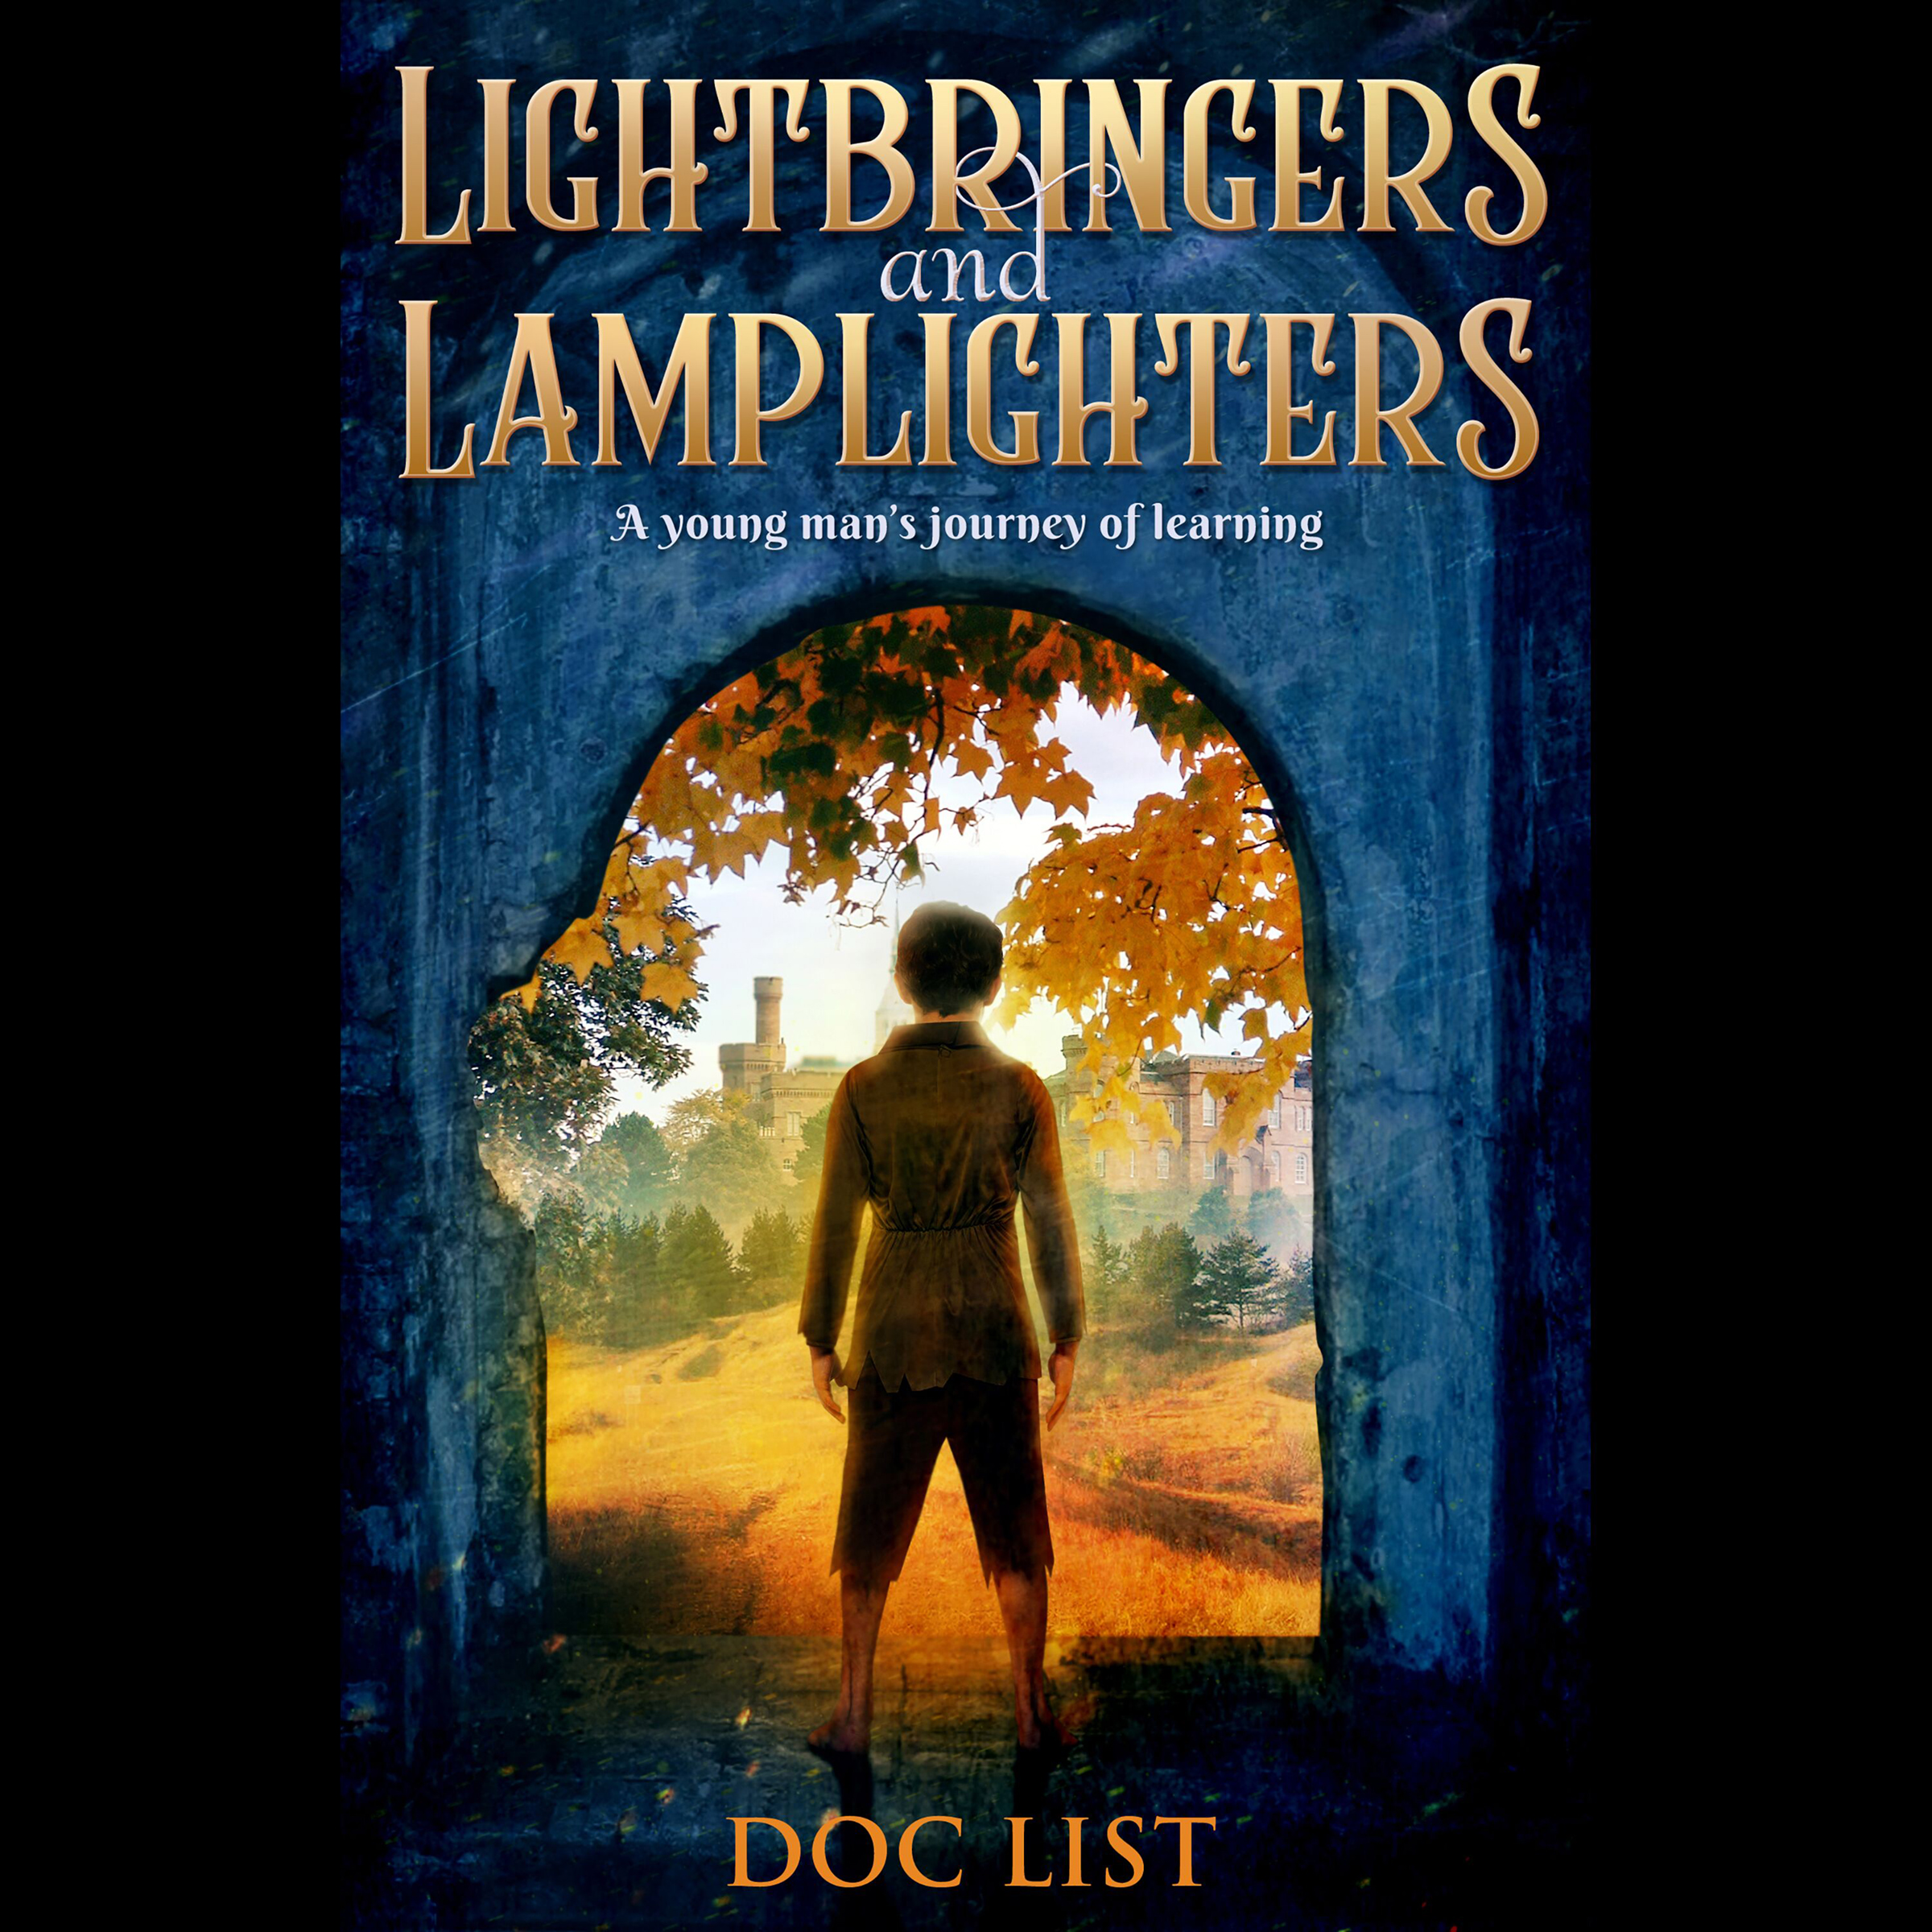 Lightbringers and Lamplighters